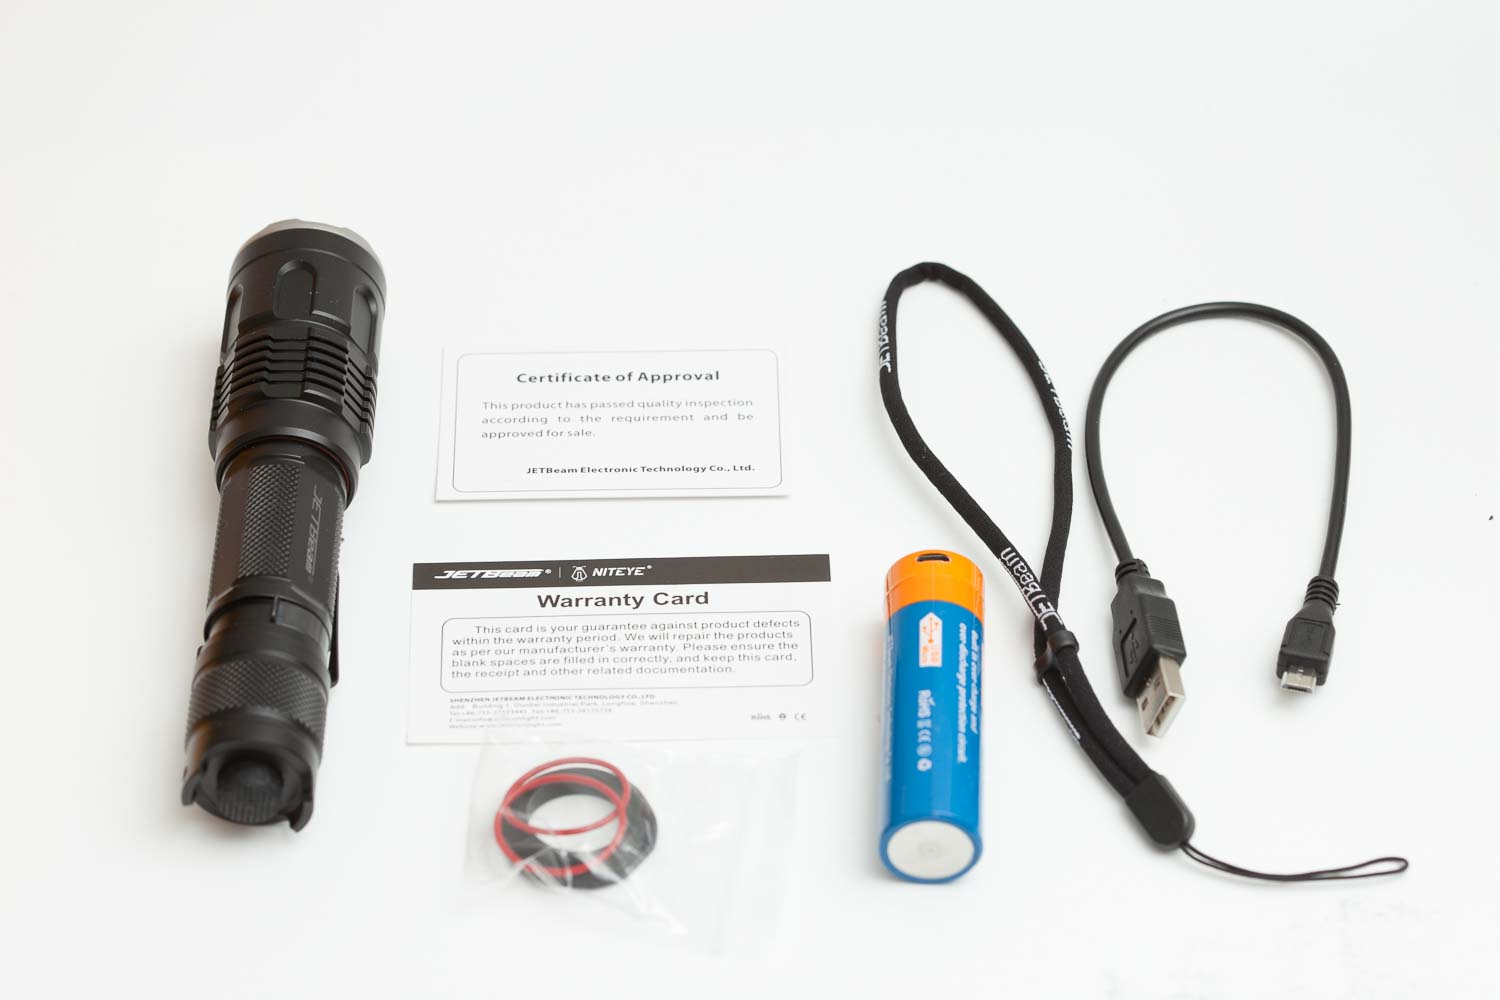 Jetbeam M2S with accessories